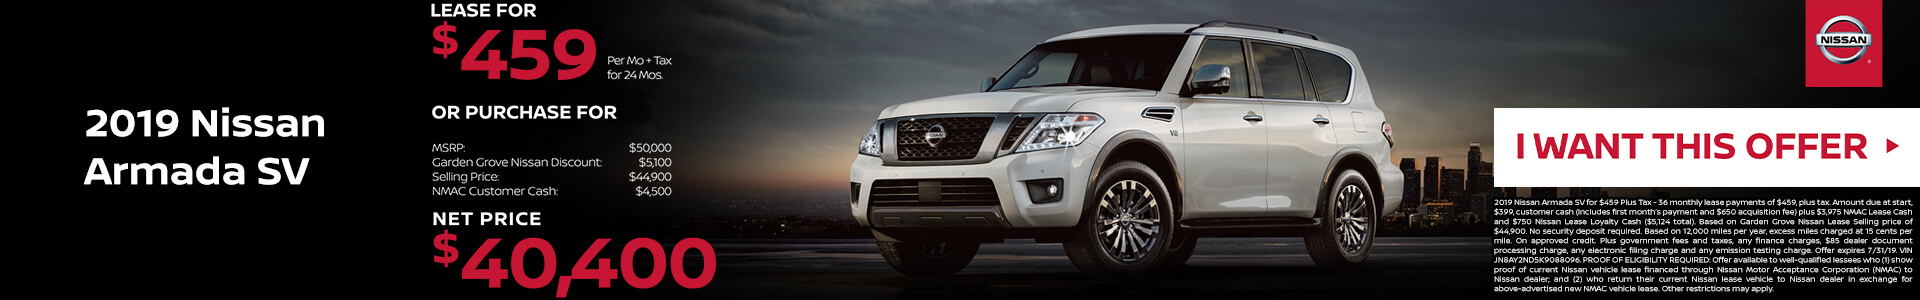 2019 Nissan Armada Lease for $459